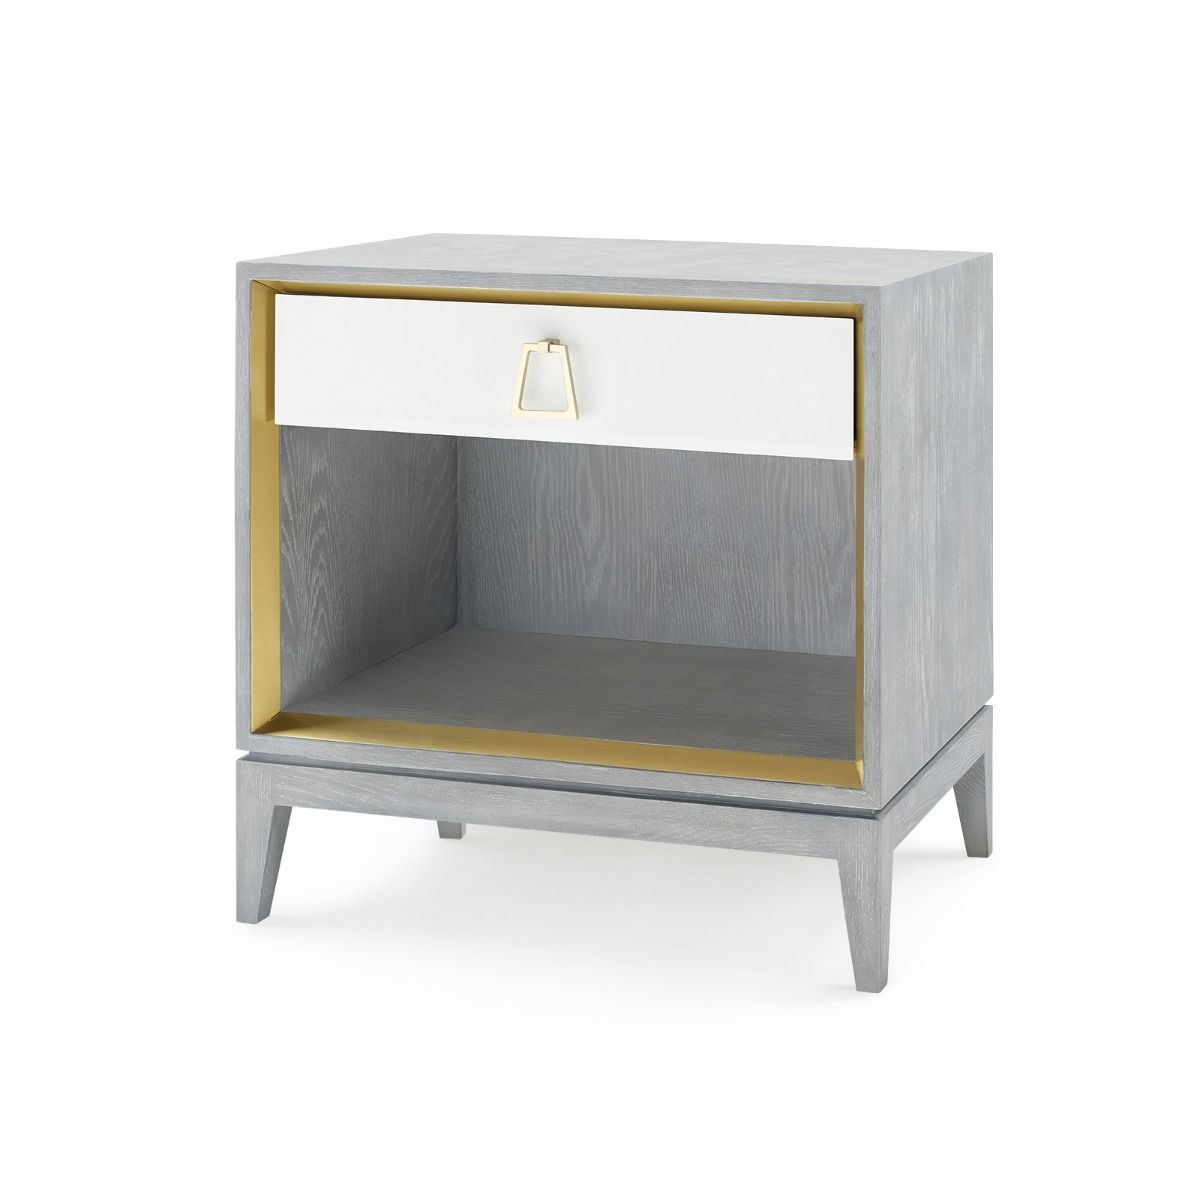 Bungalow 5 - CAMERON 1-DRAWER SIDE TABLE, GRAY